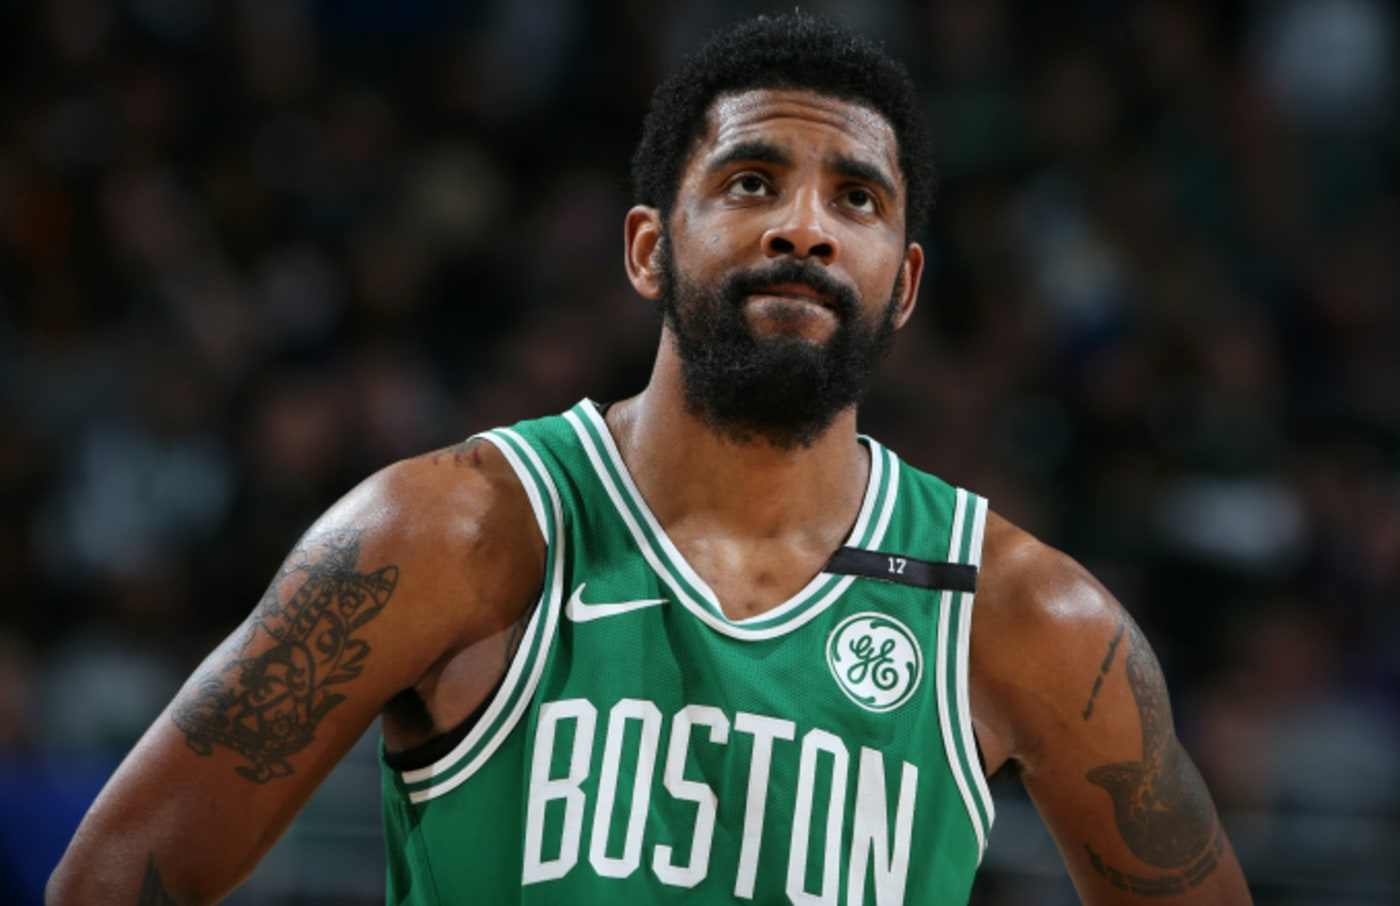 Kyrie Irving #11 of the Boston Celtics looks on during Game Five